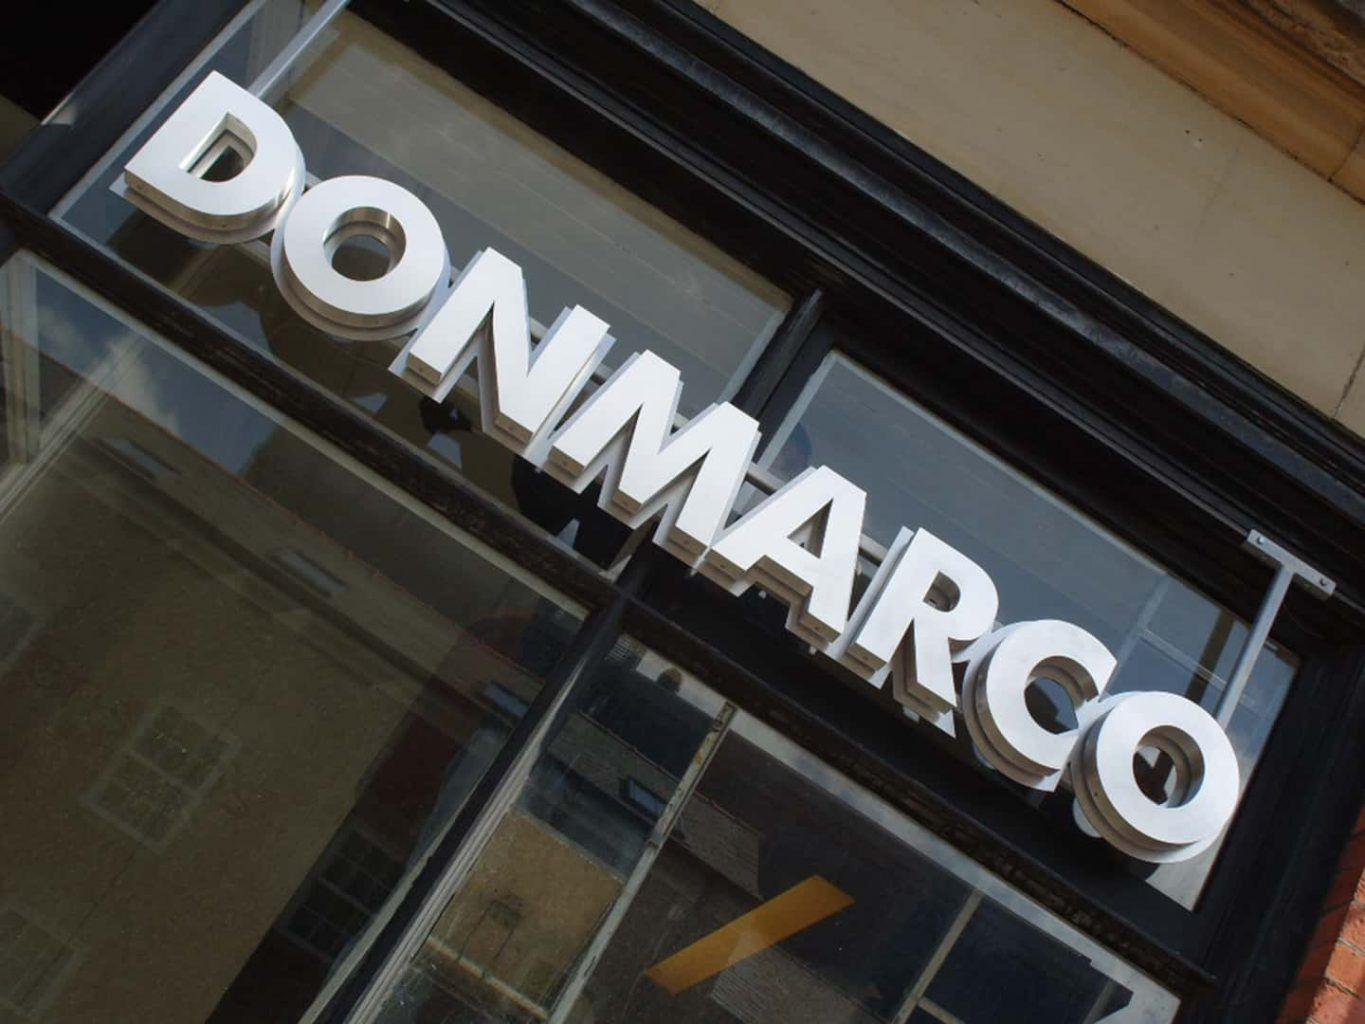 DonMarco - Built Up Lettering